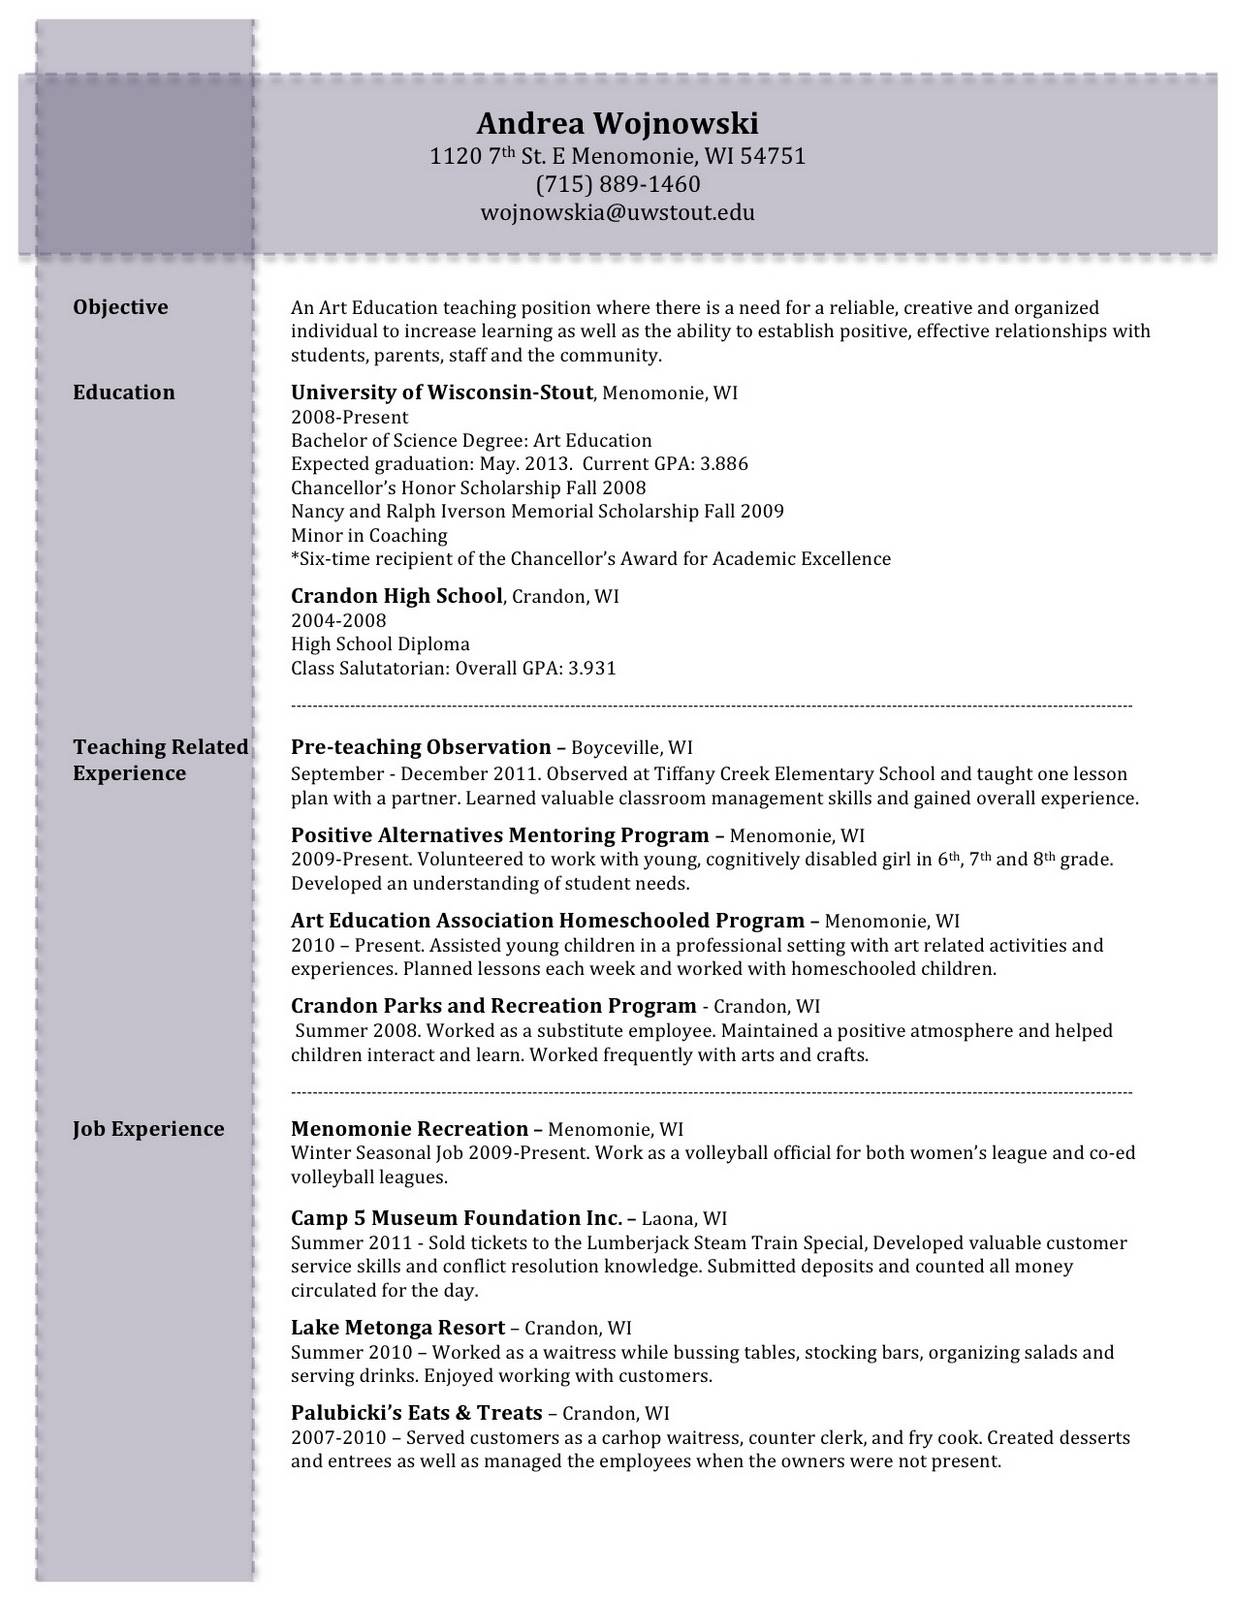 what to write for skills on resume